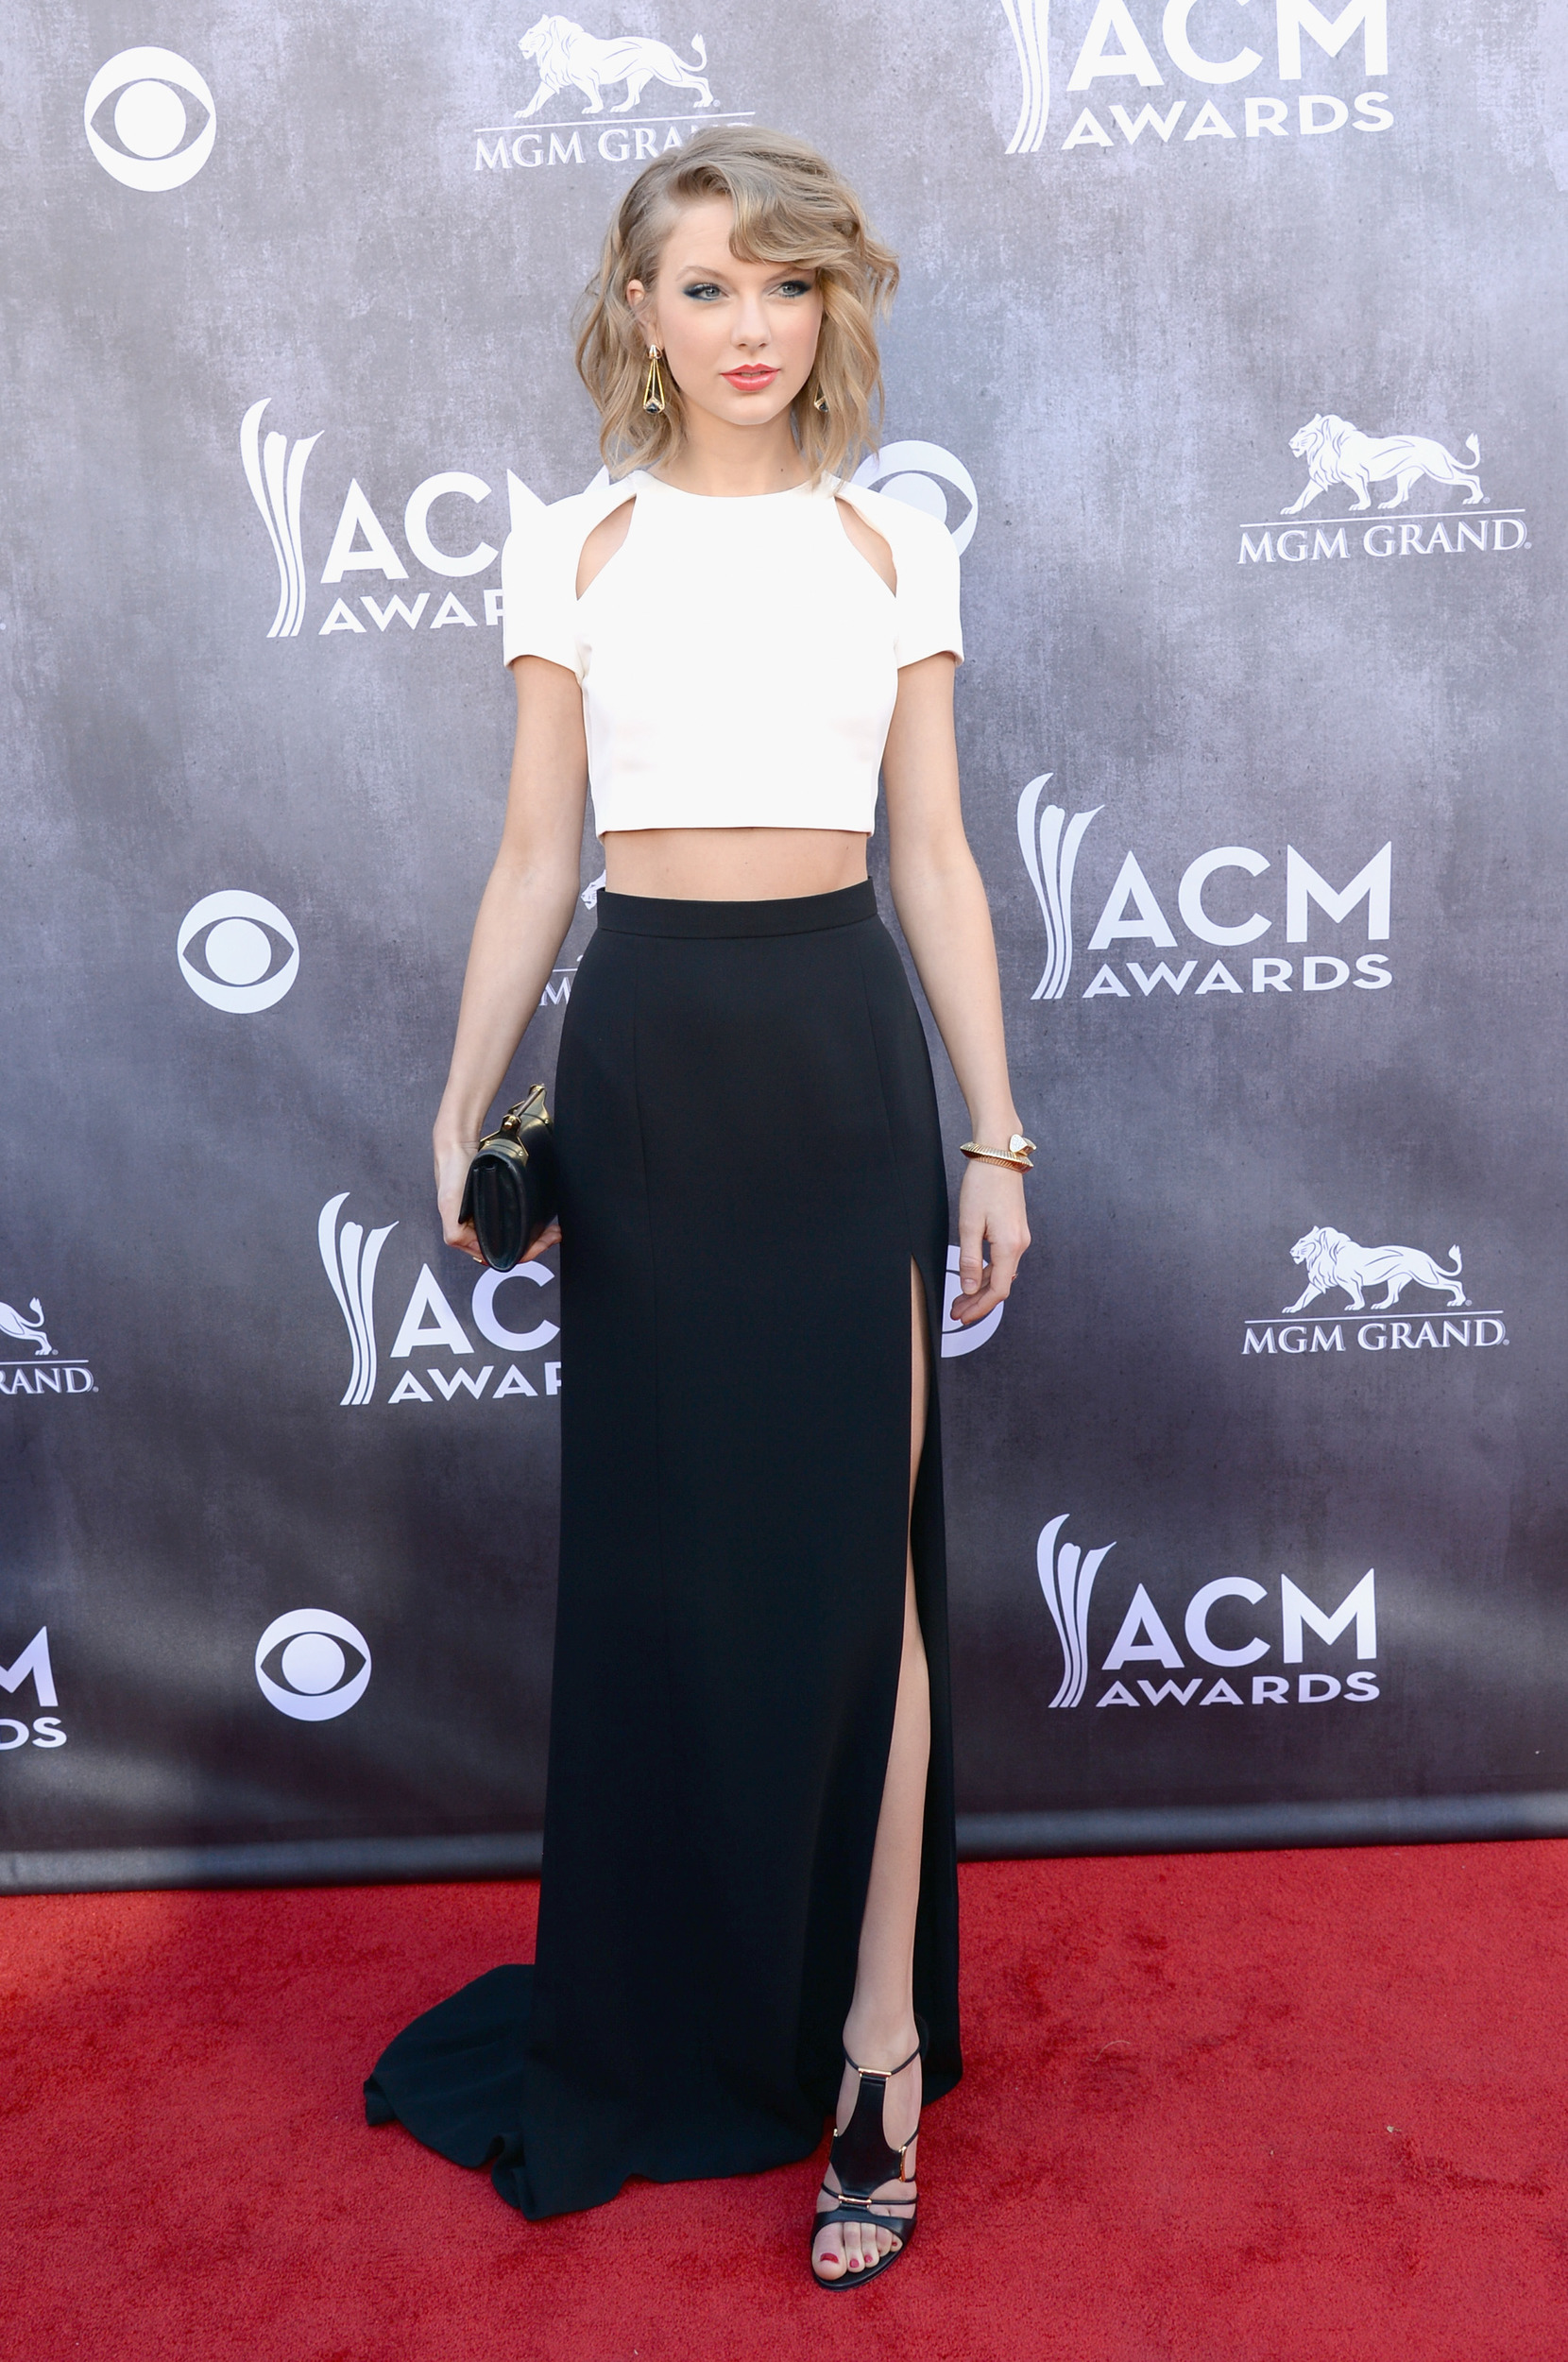 Acm awards red carpet arrivals best worst dressed for How many country music awards are there